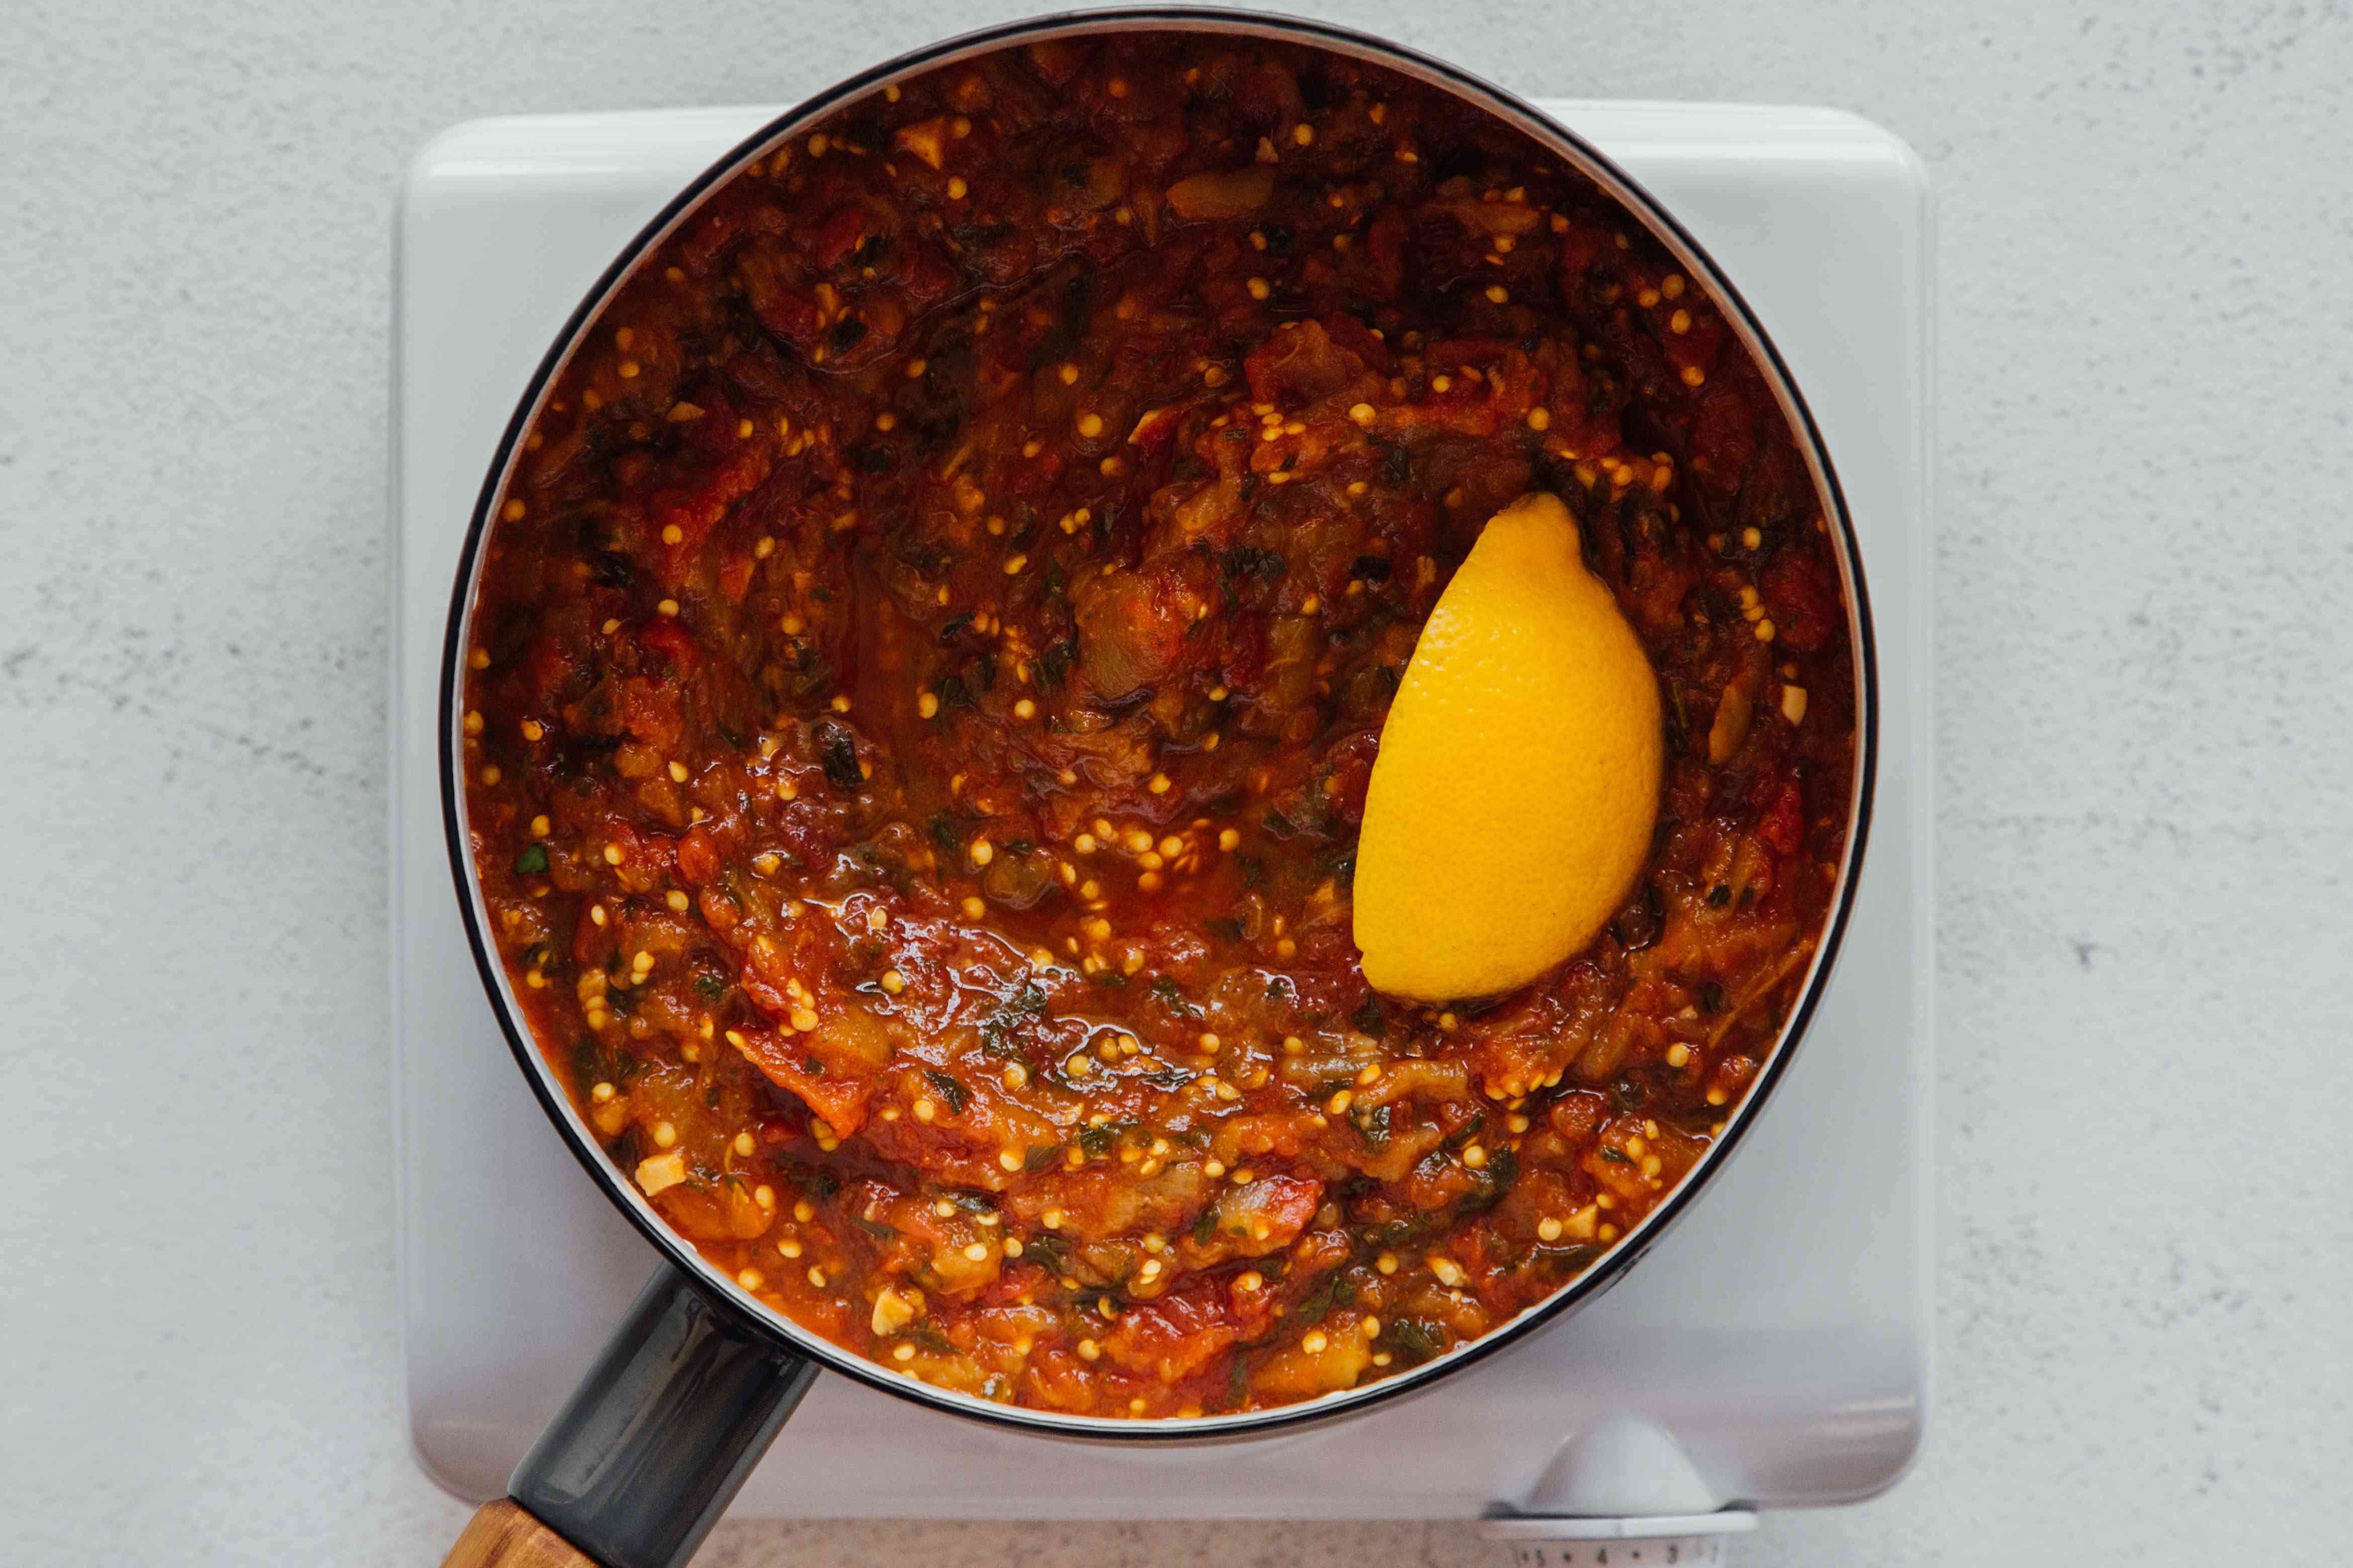 Tomato and eggplant mixture in a pan with a lemon wedge